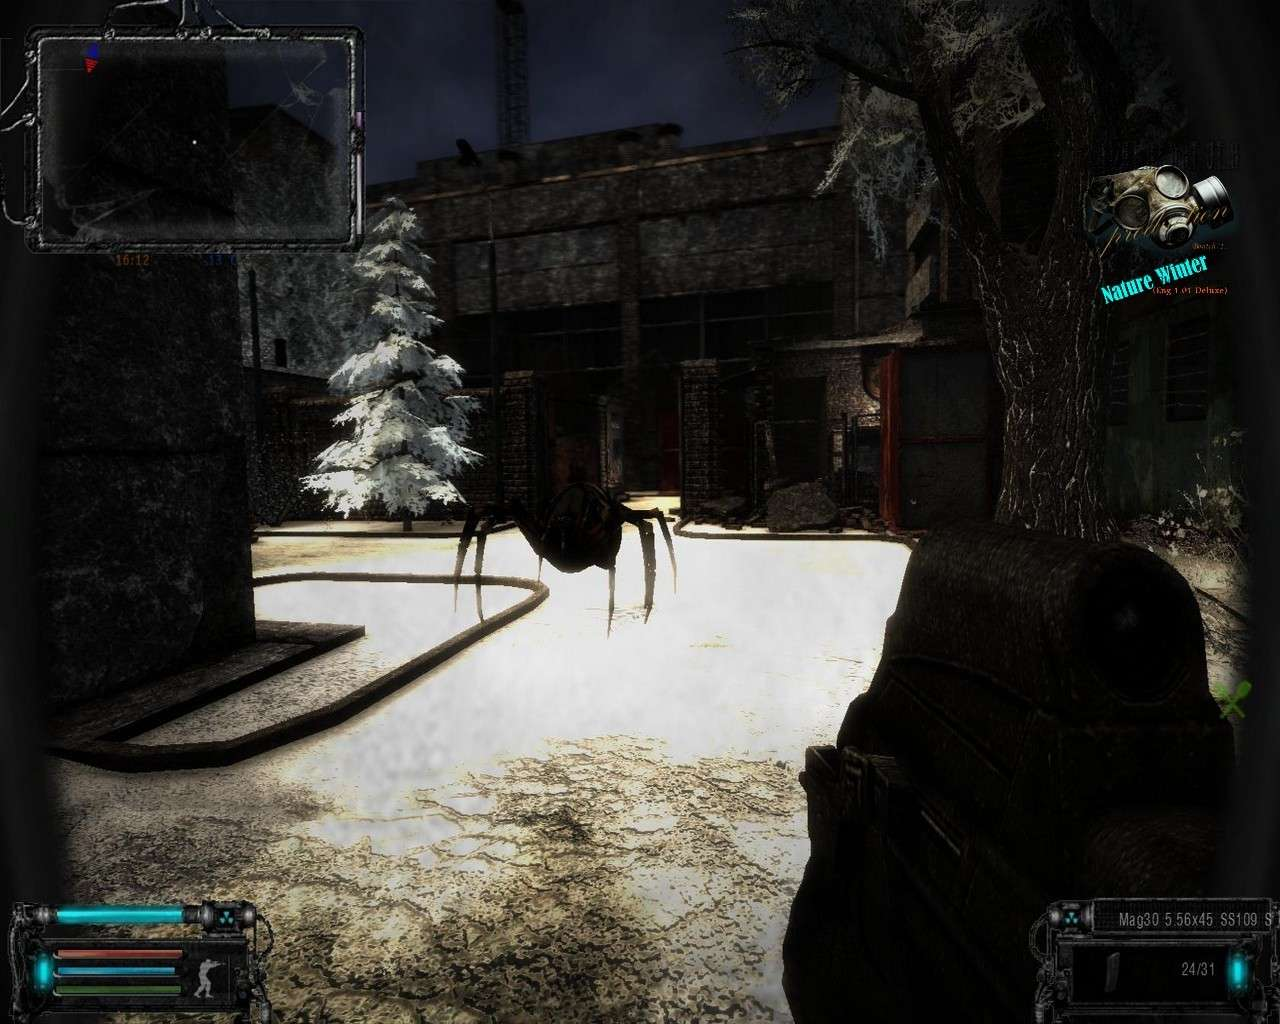 Nature Winter 2.3 Black Edition (eng 1.01 Deluxe) Images Gallery! Serie:1# Ss_bo119